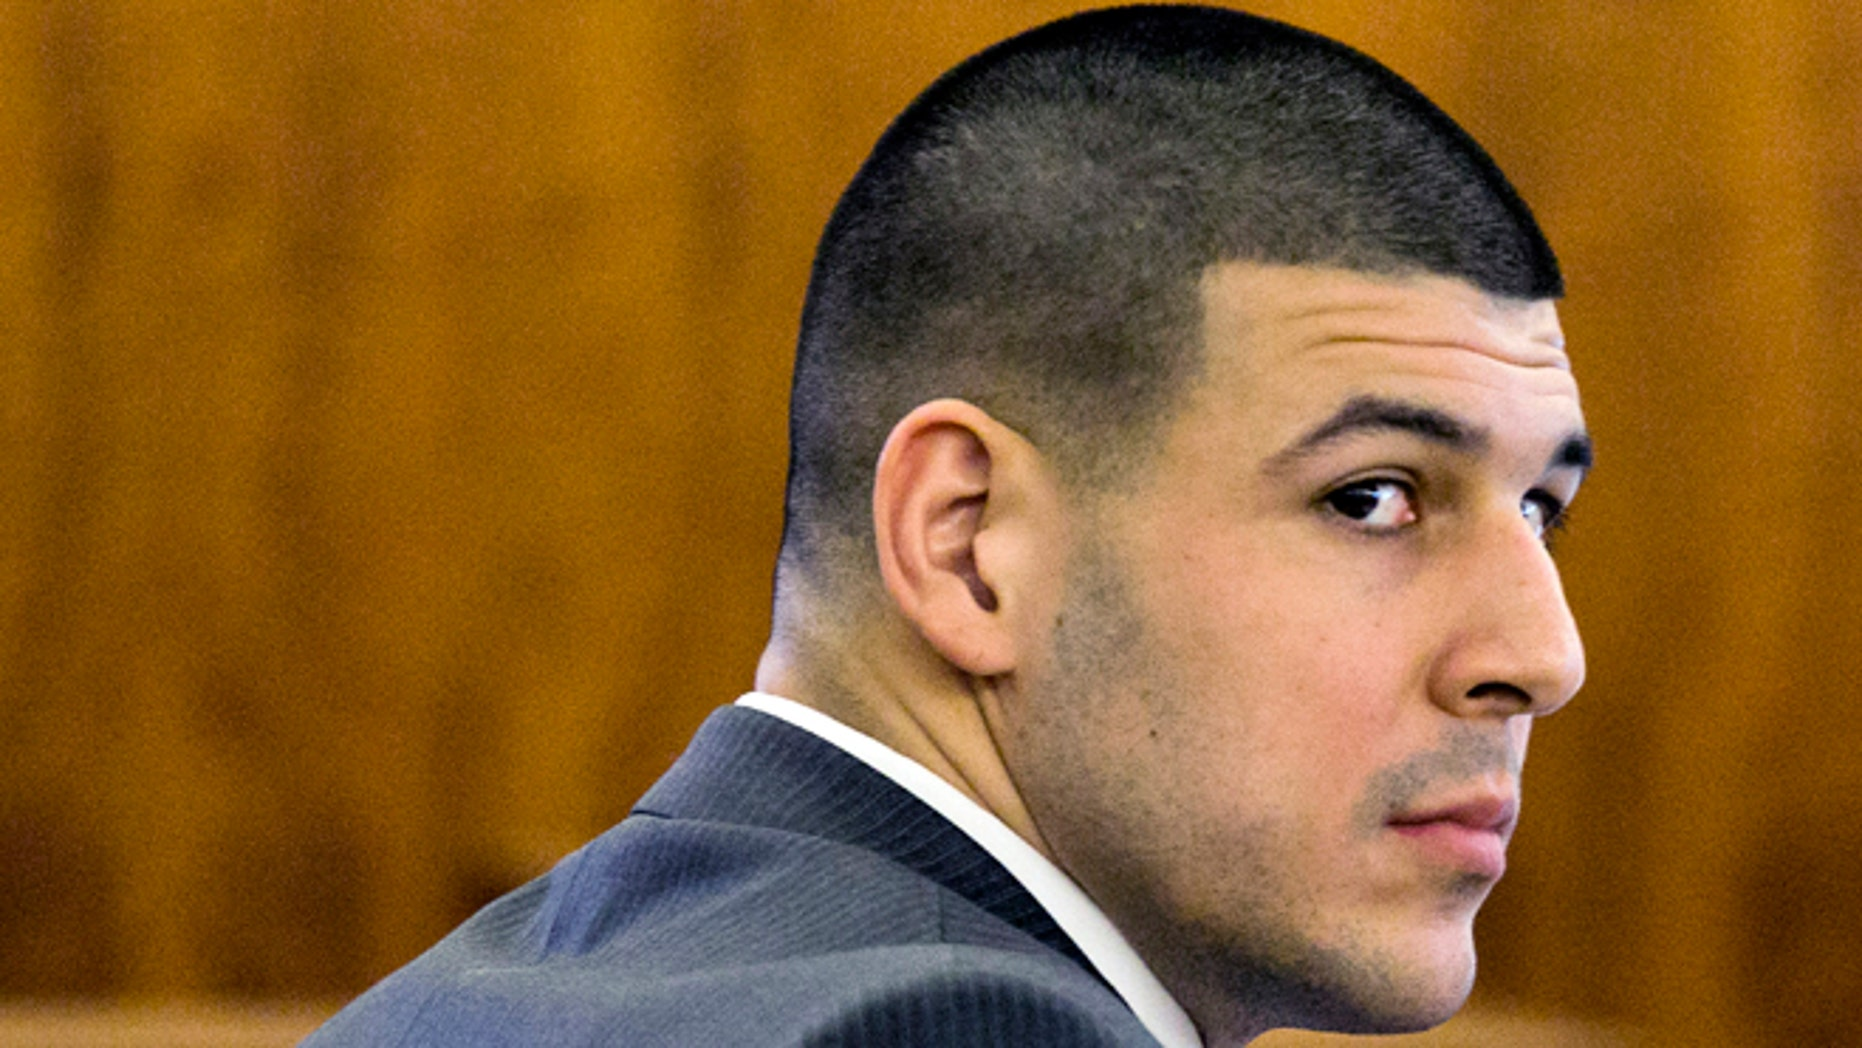 Former New England Patriots football player Aaron Hernandez looks at the prosecutor during his murder trial at Bristol County Superior Court Tuesday, March 3, 2015, in Fall River, Mass.  Hernandez is accused of the June 2013 killing of Odin Lloyd. (AP Photo/Dominick Reuter)